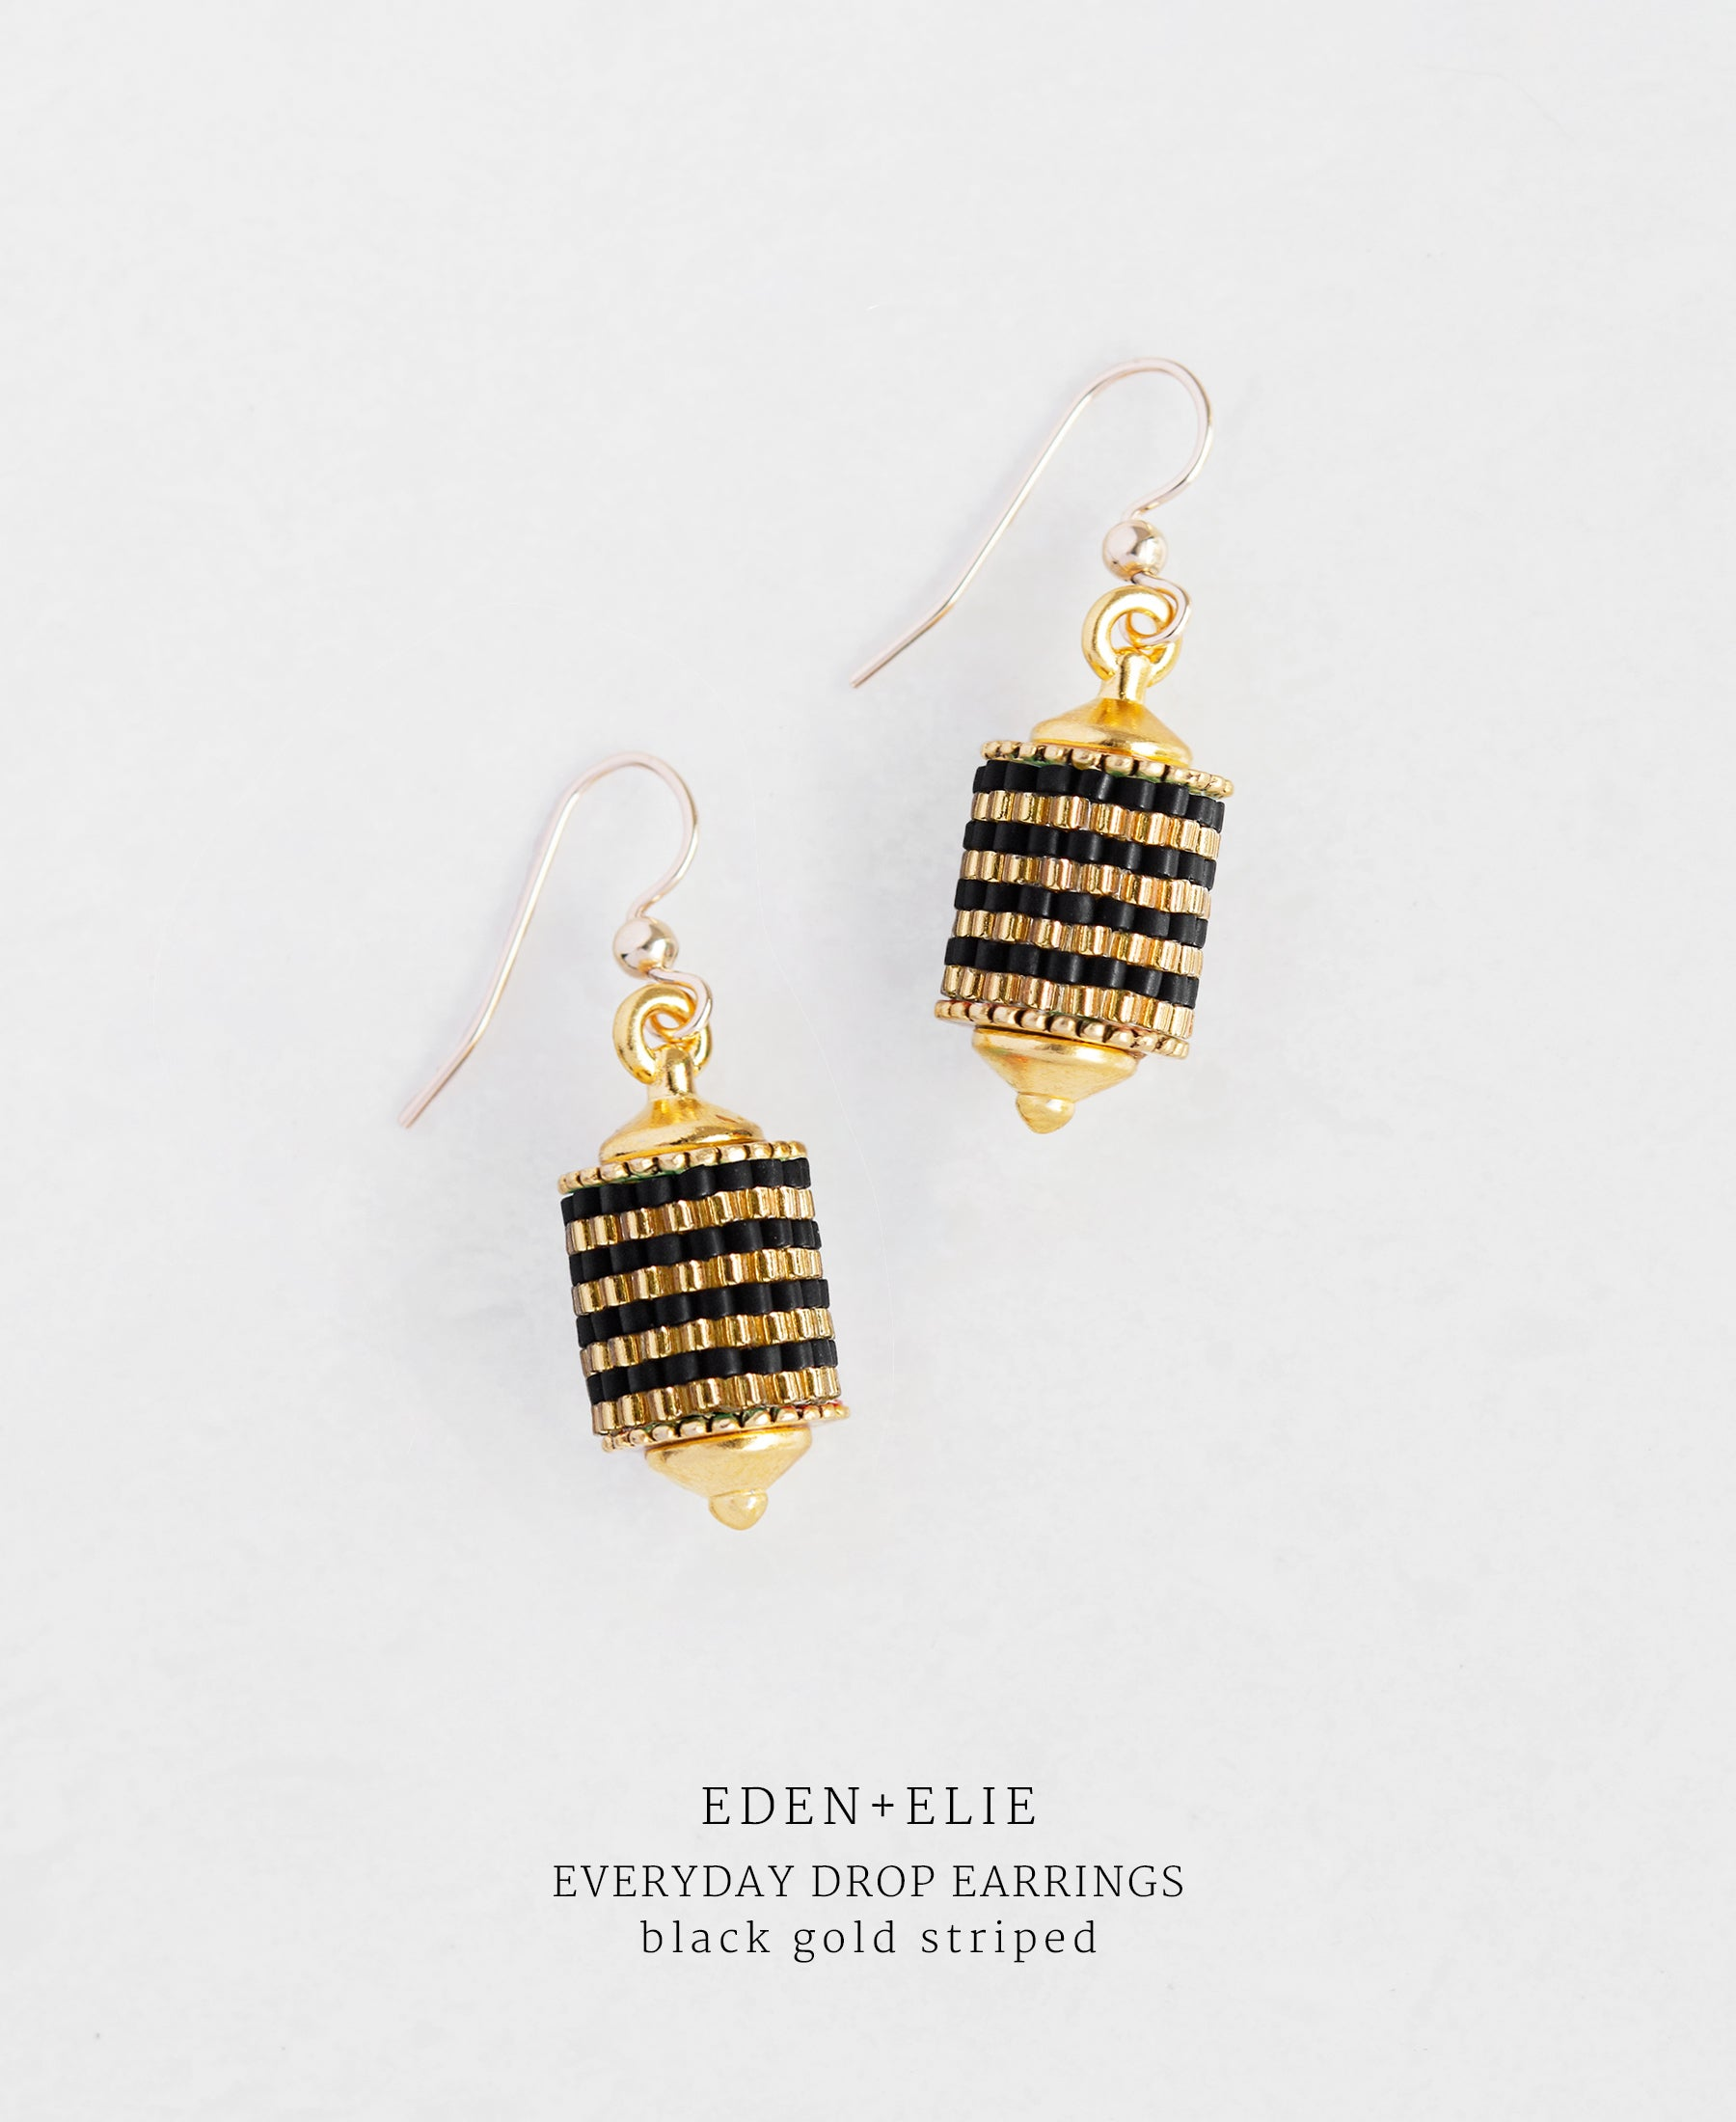 EDEN + ELIE Everyday drop earrings - black gold striped